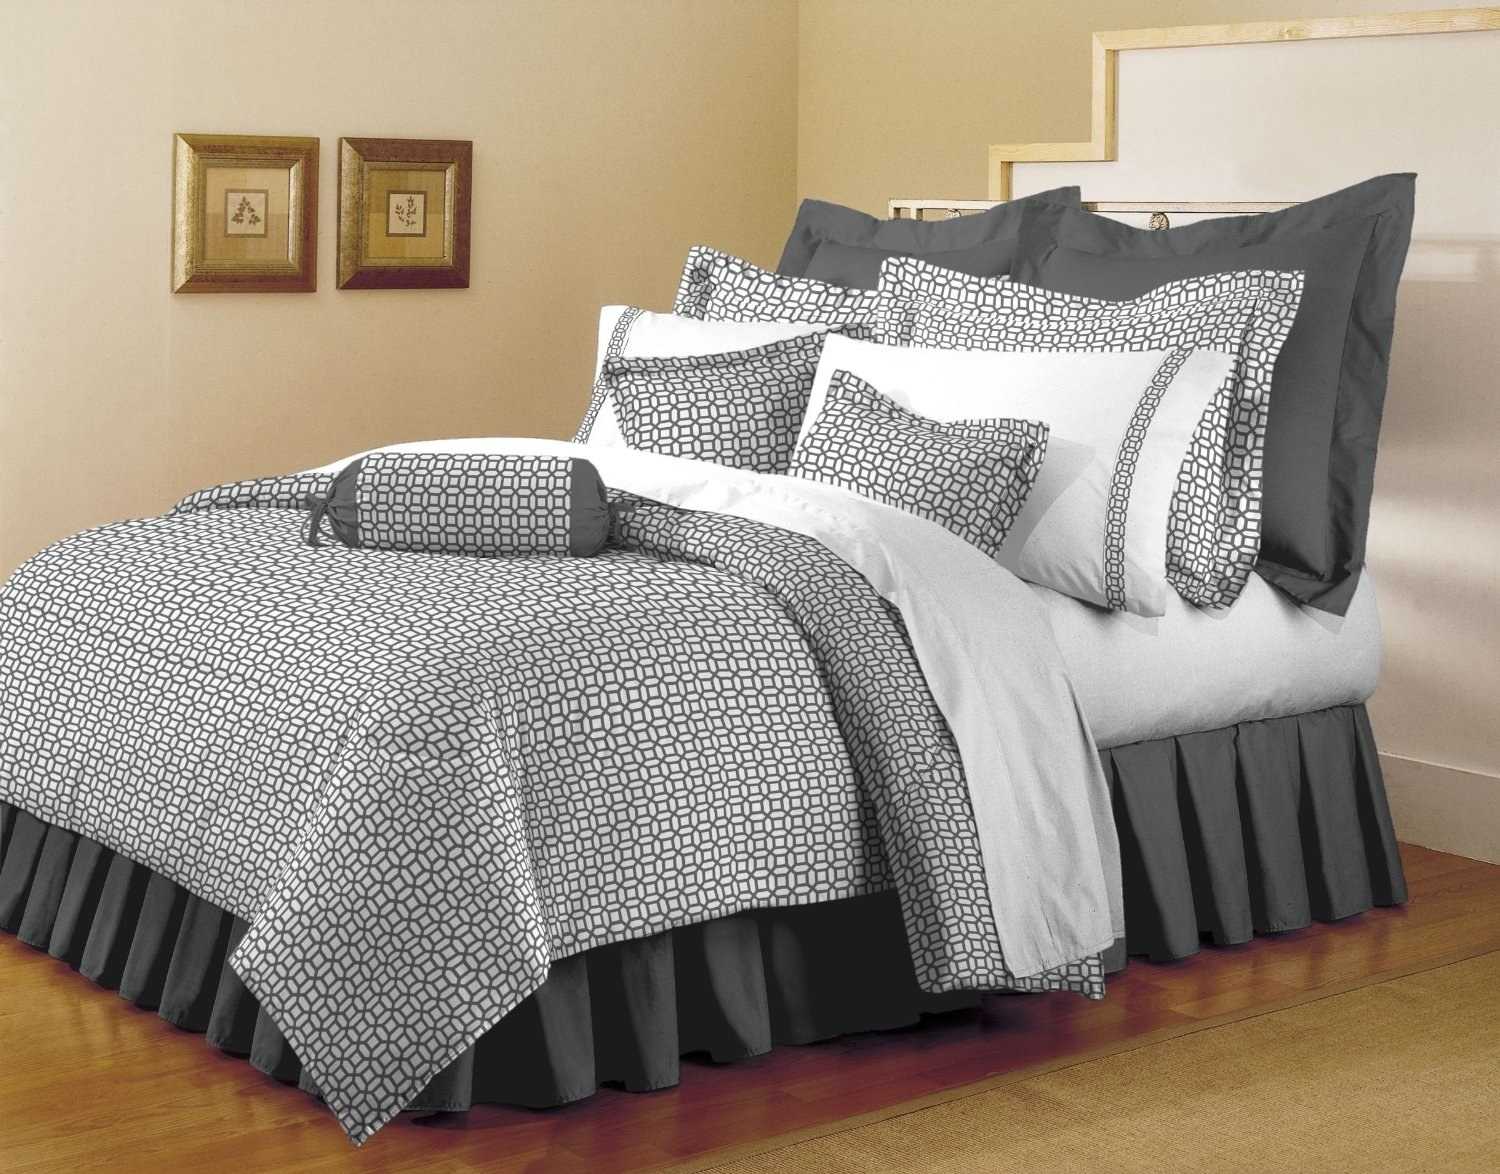 of the best sheets you can get on amazon - share on facebook share